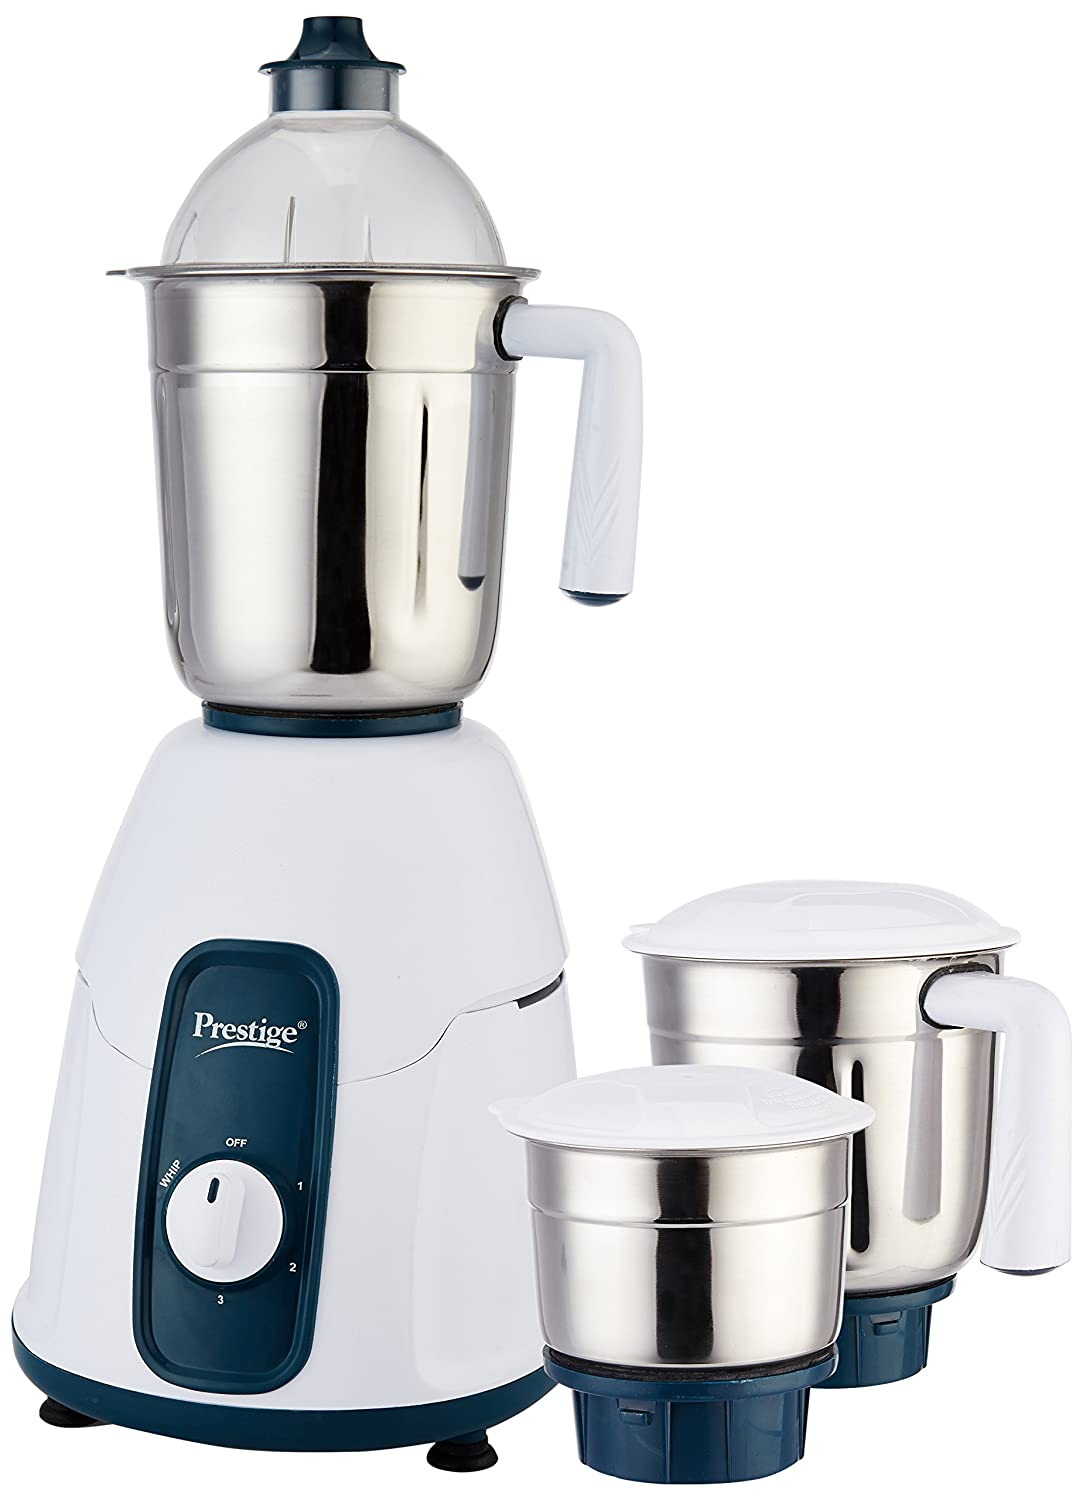 Prestige Kitchen Appliances Buy Prestige Stylo 750 Watt Mixer Grinder Online At Low Prices In